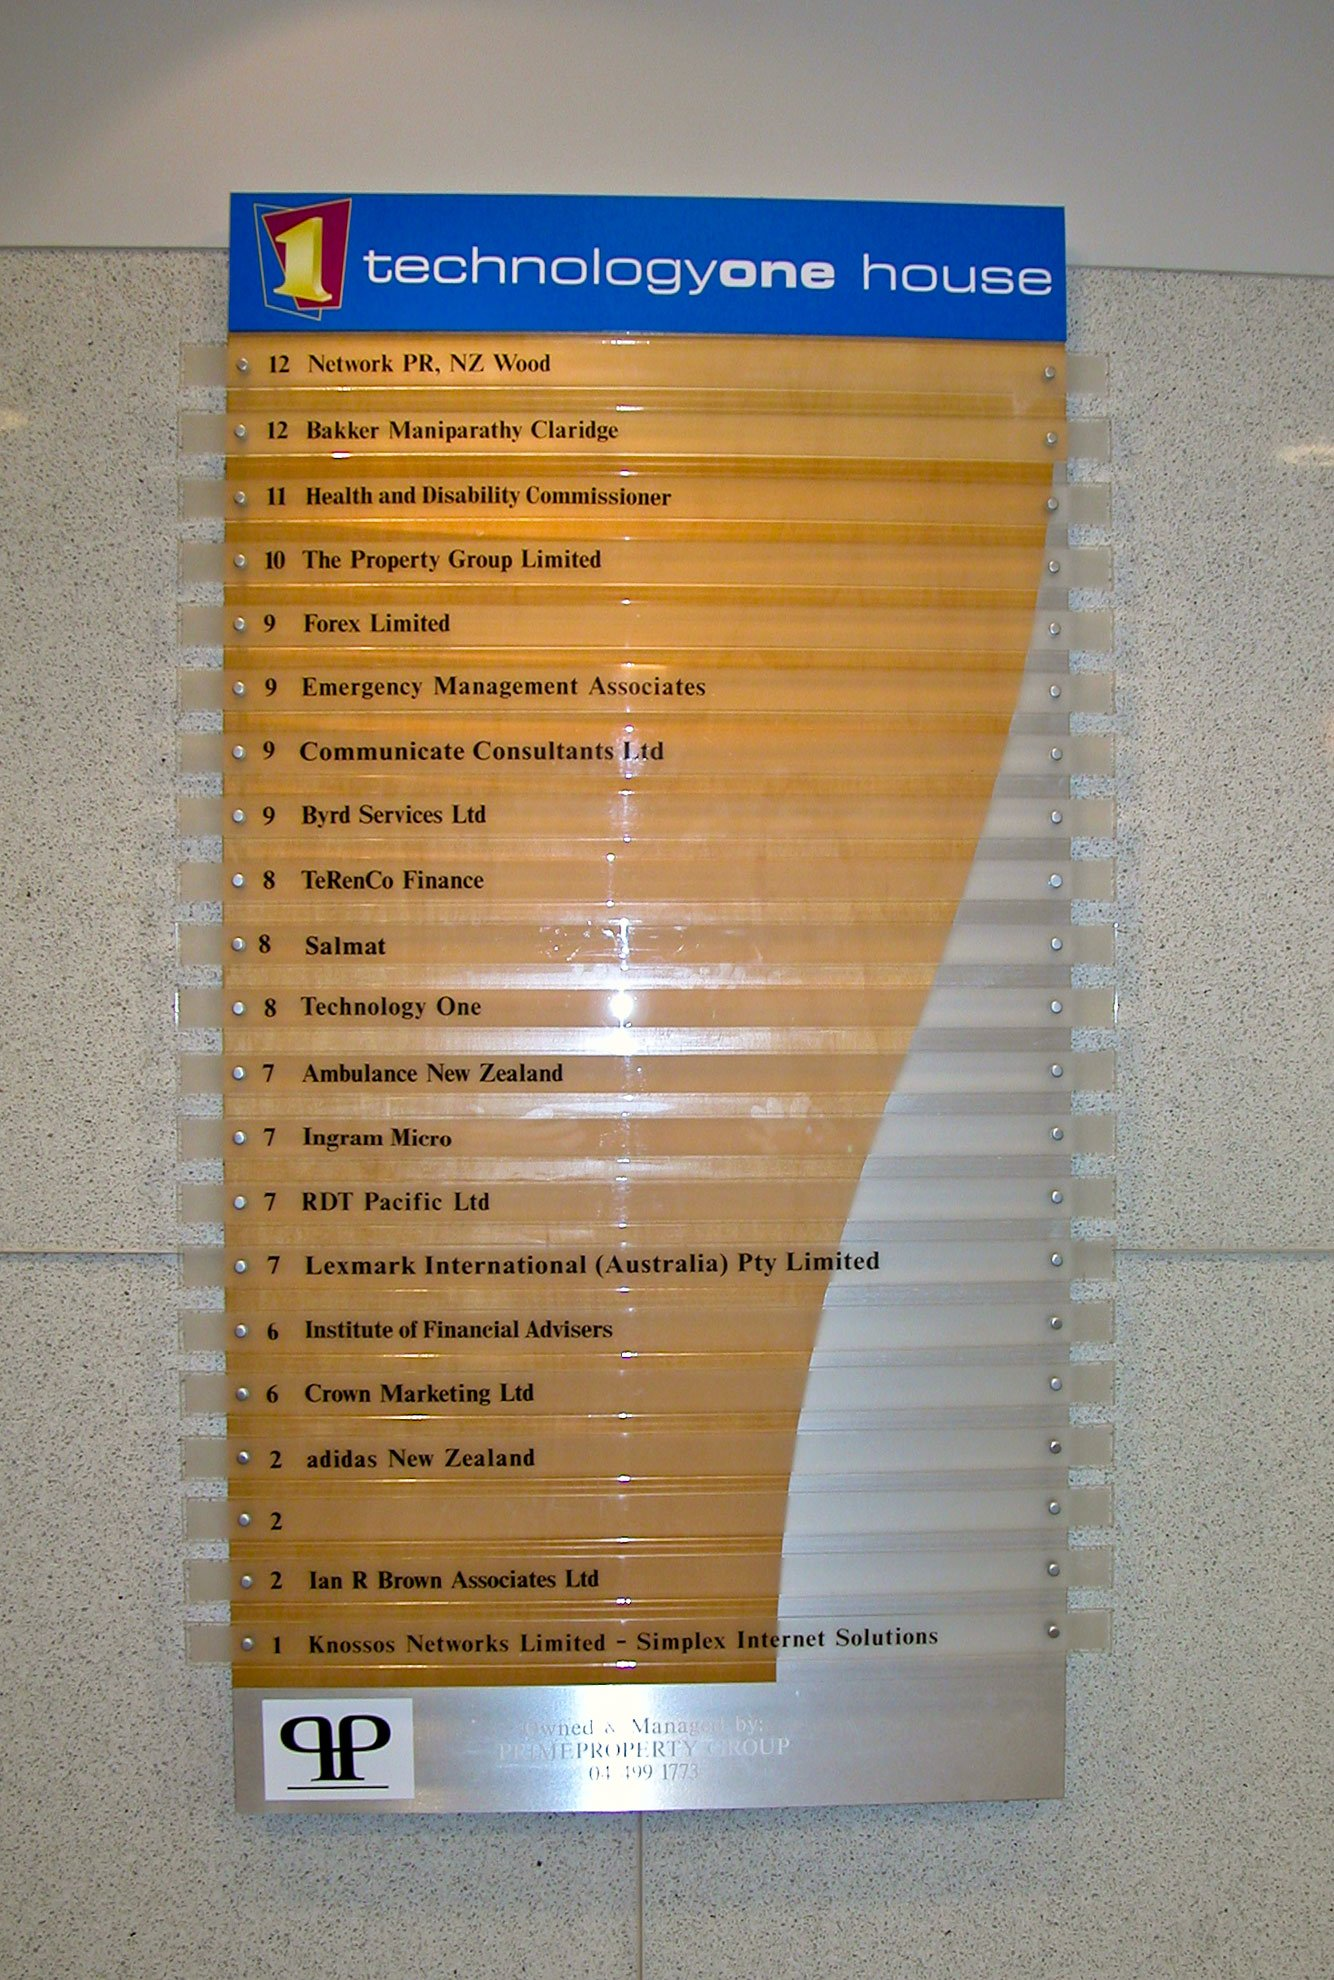 Computer cut vinyl lettering applied to clear acrylic directory panels